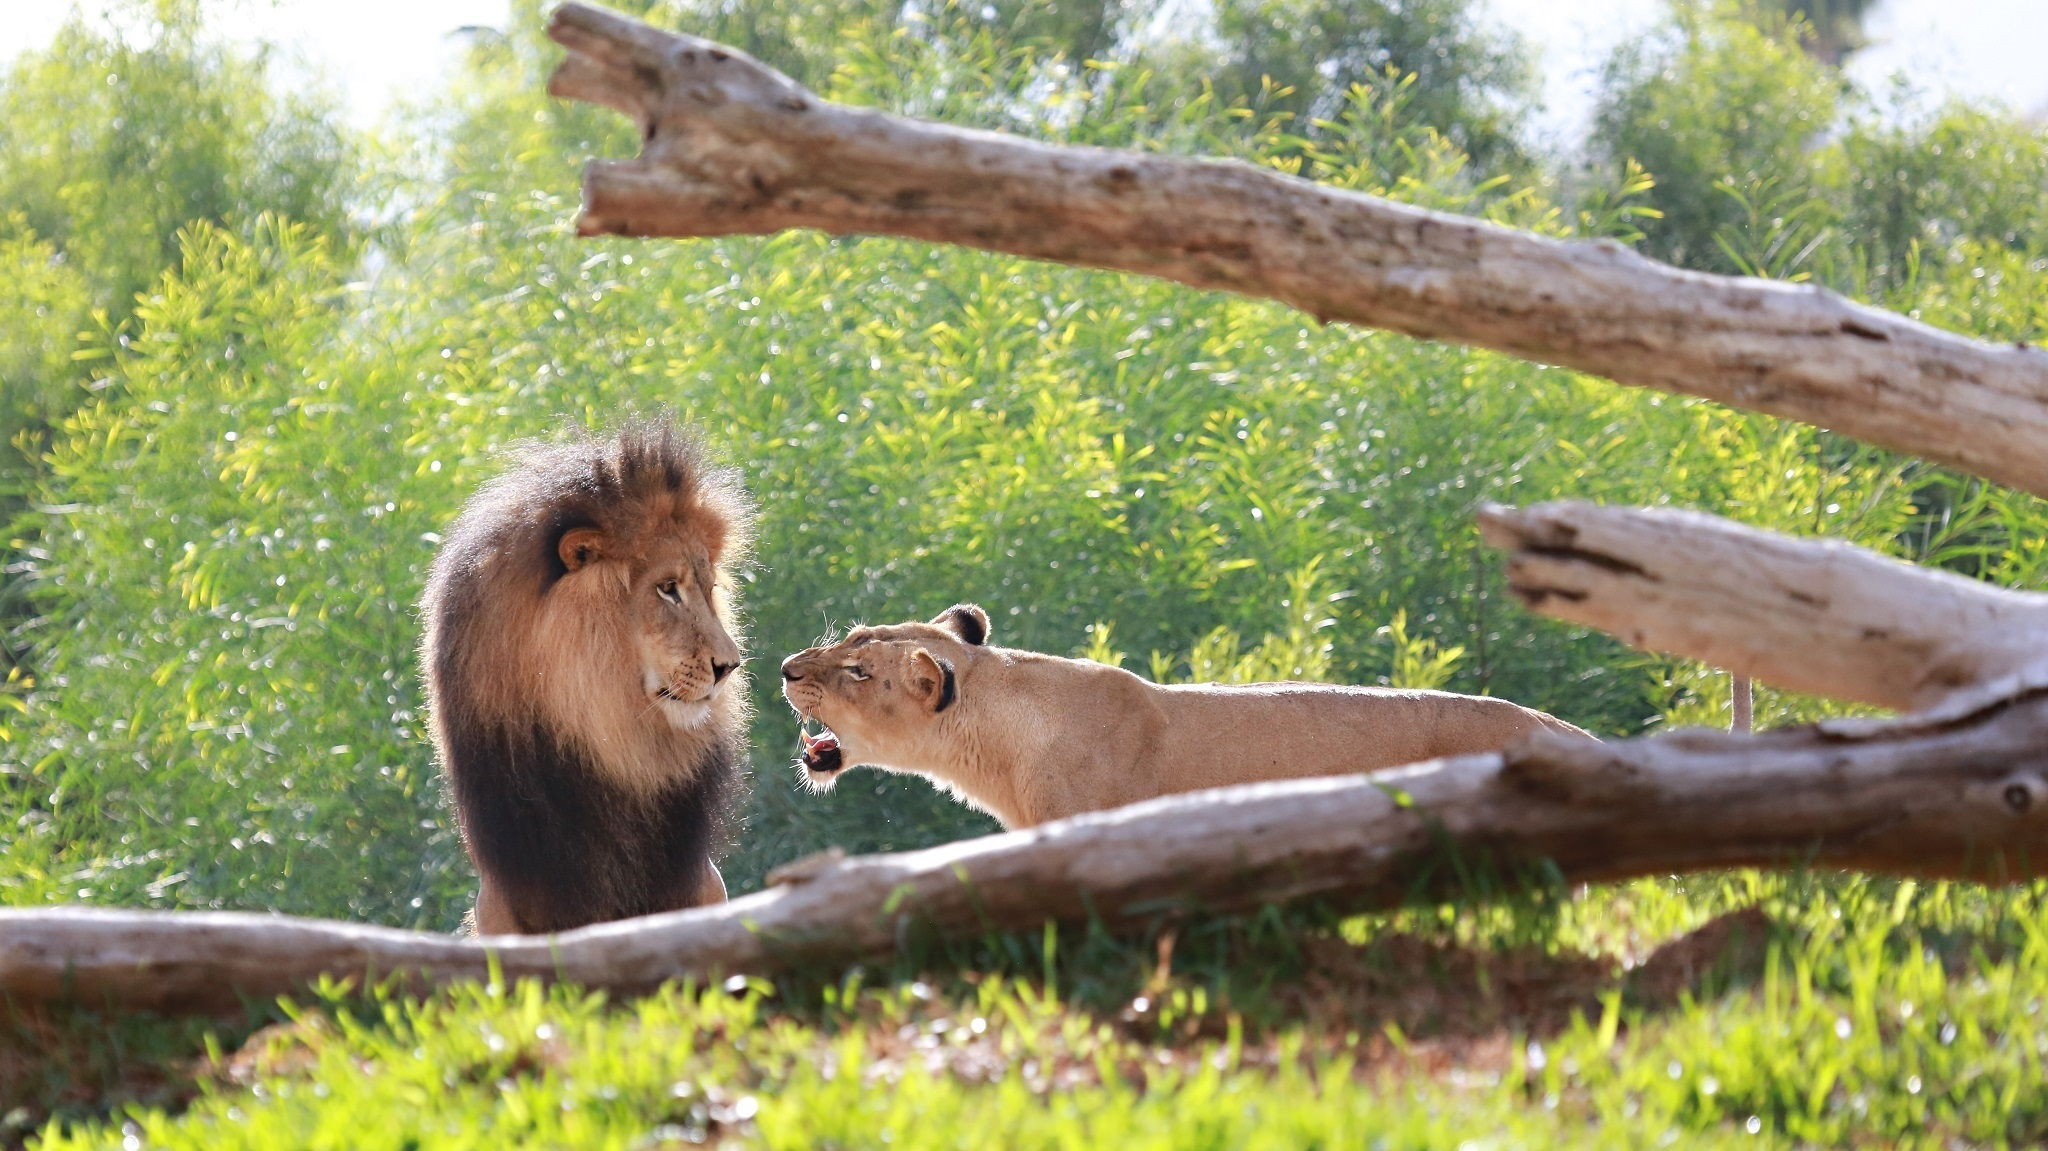 94829 Screensavers and Wallpapers Predators for phone. Download Animals, Grass, Predators, Wood, Tree, Lion, Lioness pictures for free